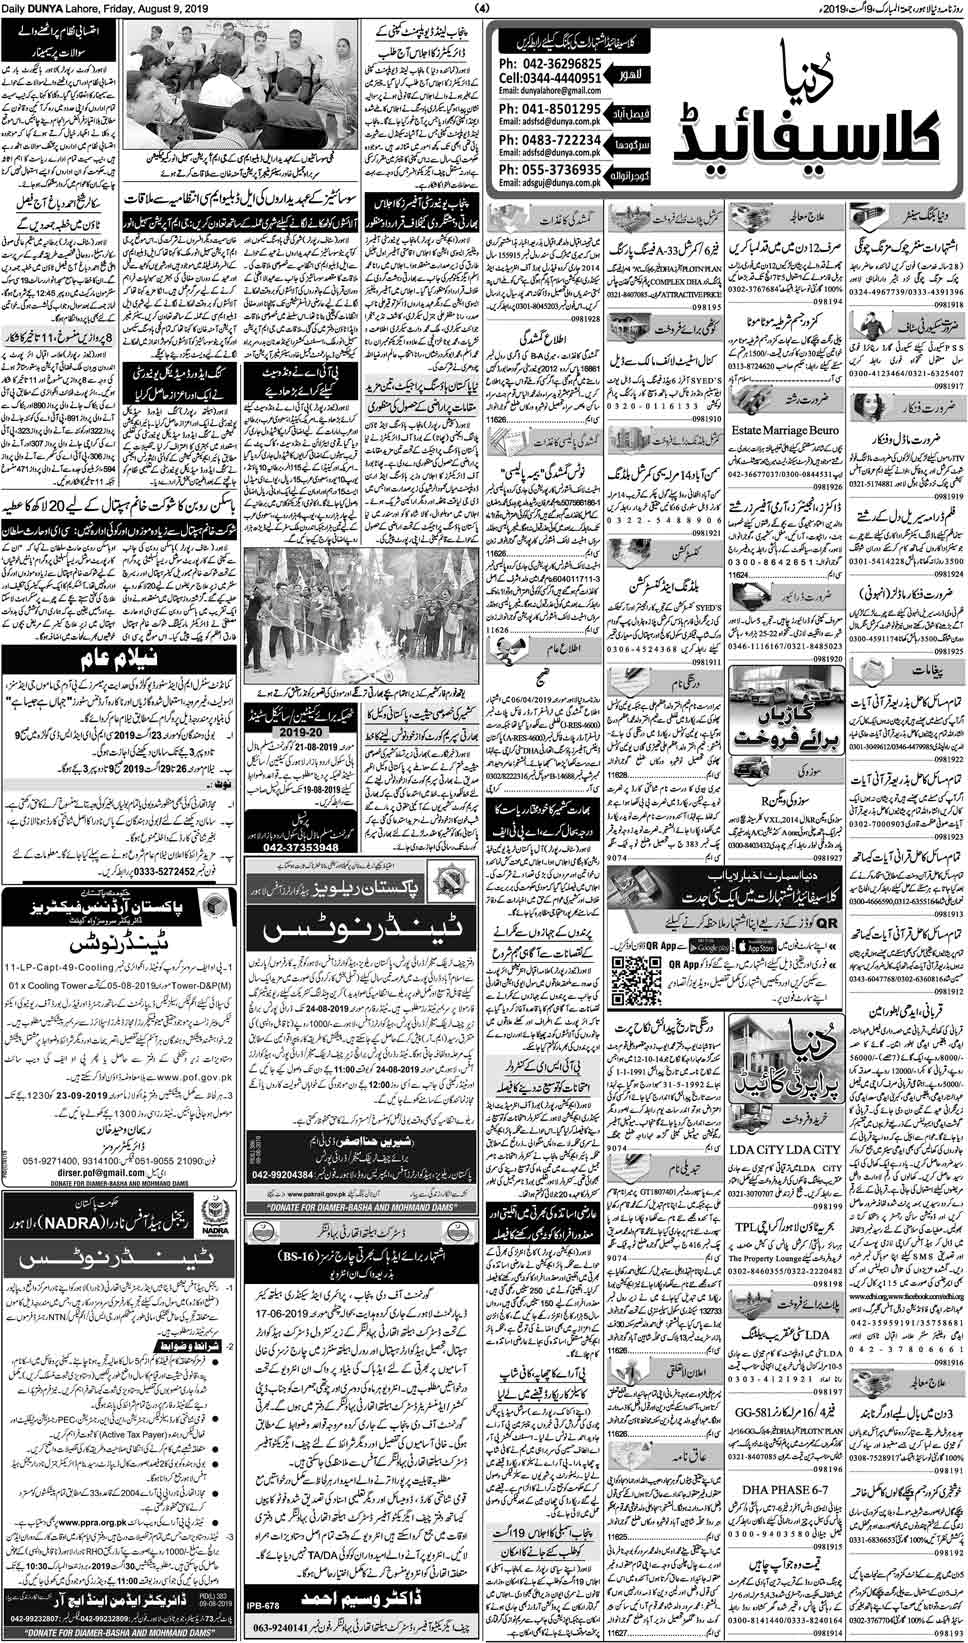 DAILY EXPRESS URDU NEWSPAPER MULTAN - Daily Islam Urdu